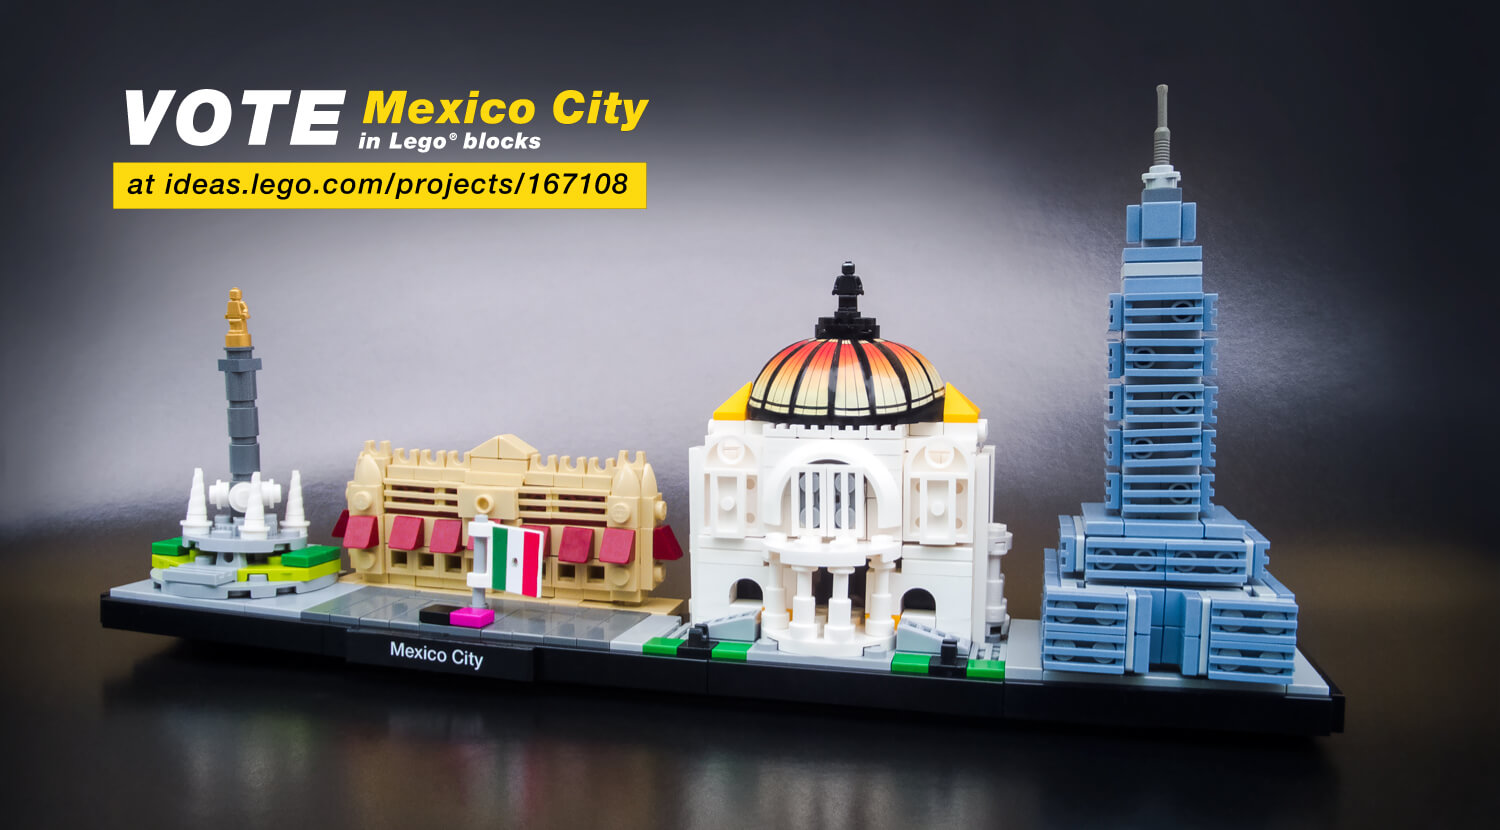 Lego Mexico City Created By Fan About To Reach 10k Votes And Could Soon Become An Official Lego | Bored Panda